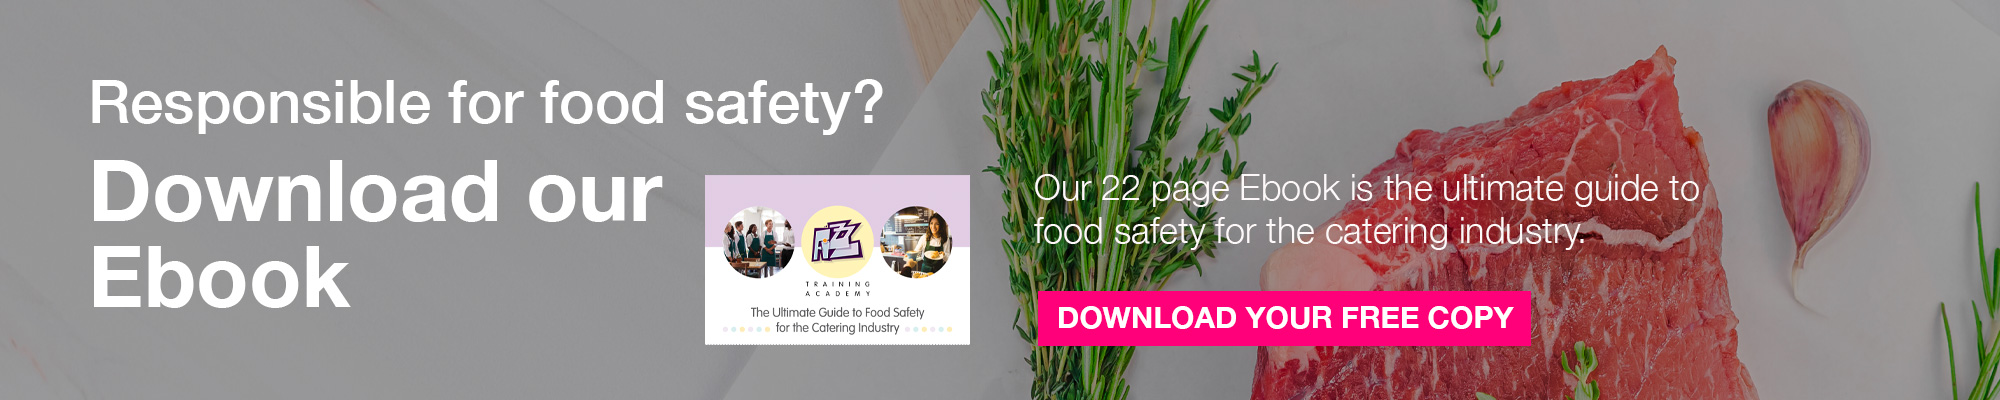 FOOD-SAFETY-EBOOK-AD-BANNER